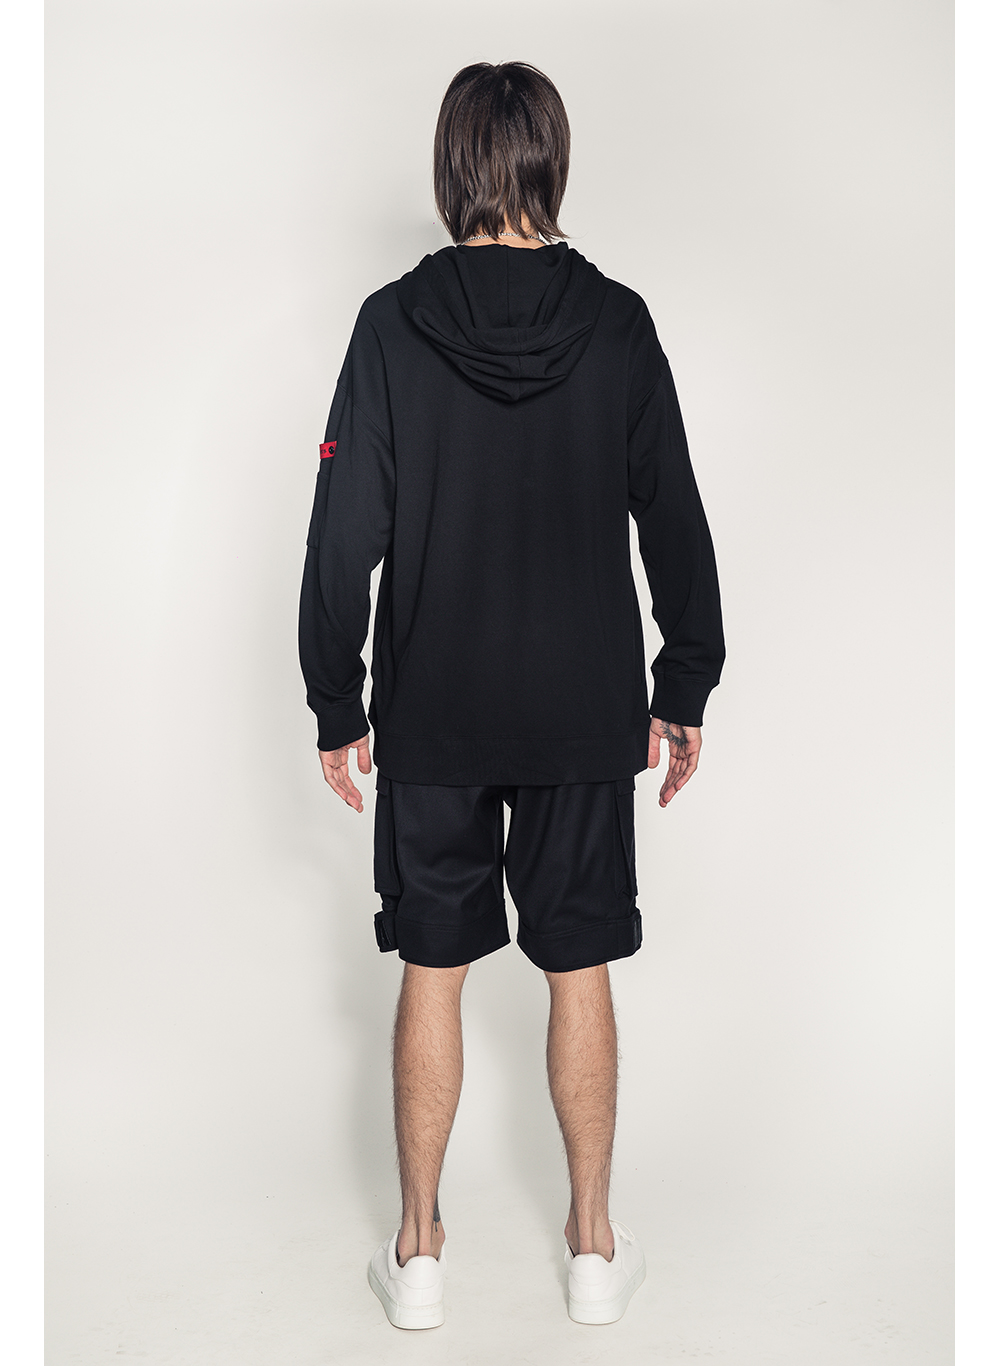 Lamour Death Adder Pullover Hoody